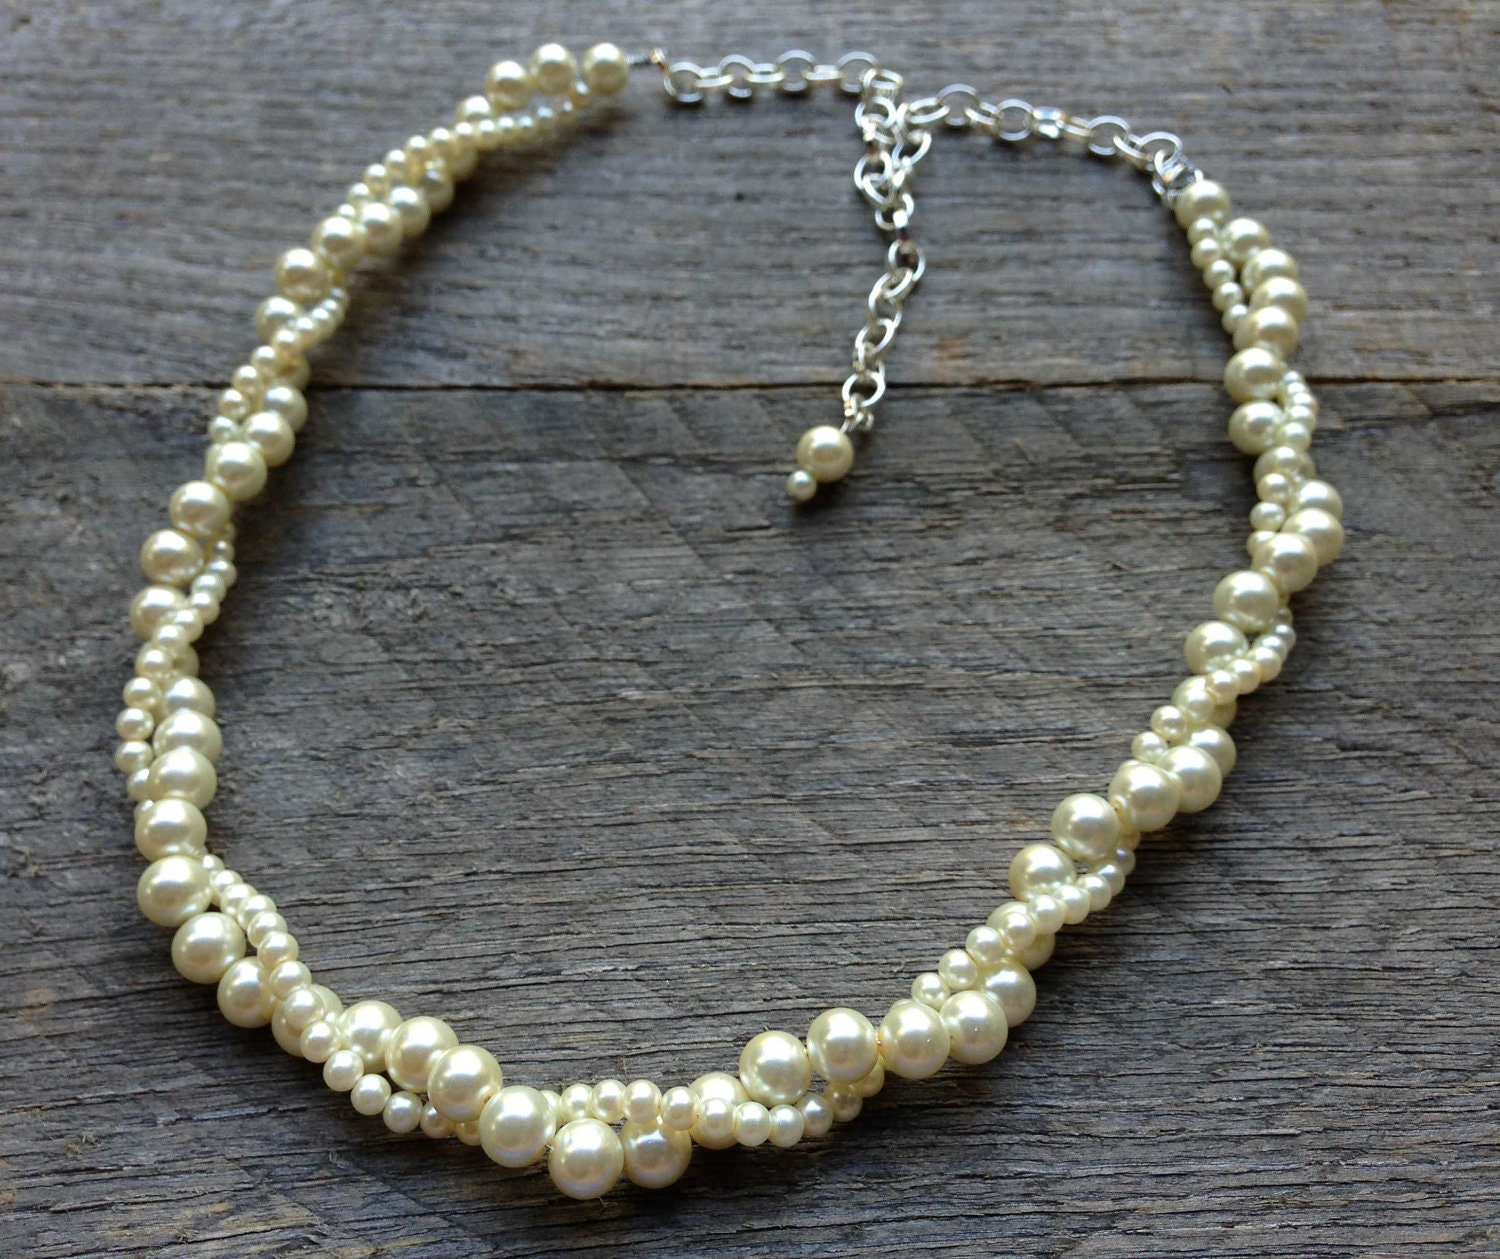 Ivory Pearl Necklace Twisted Clusters On Silver Or Gold. Knitted Necklace. Opal Ring Necklace. Garnet Gemstone Necklace. Pink Rhinestone Necklace. Tri Tone Necklace. Tear Necklace. Middle Necklace. Spiny Oyster Necklace